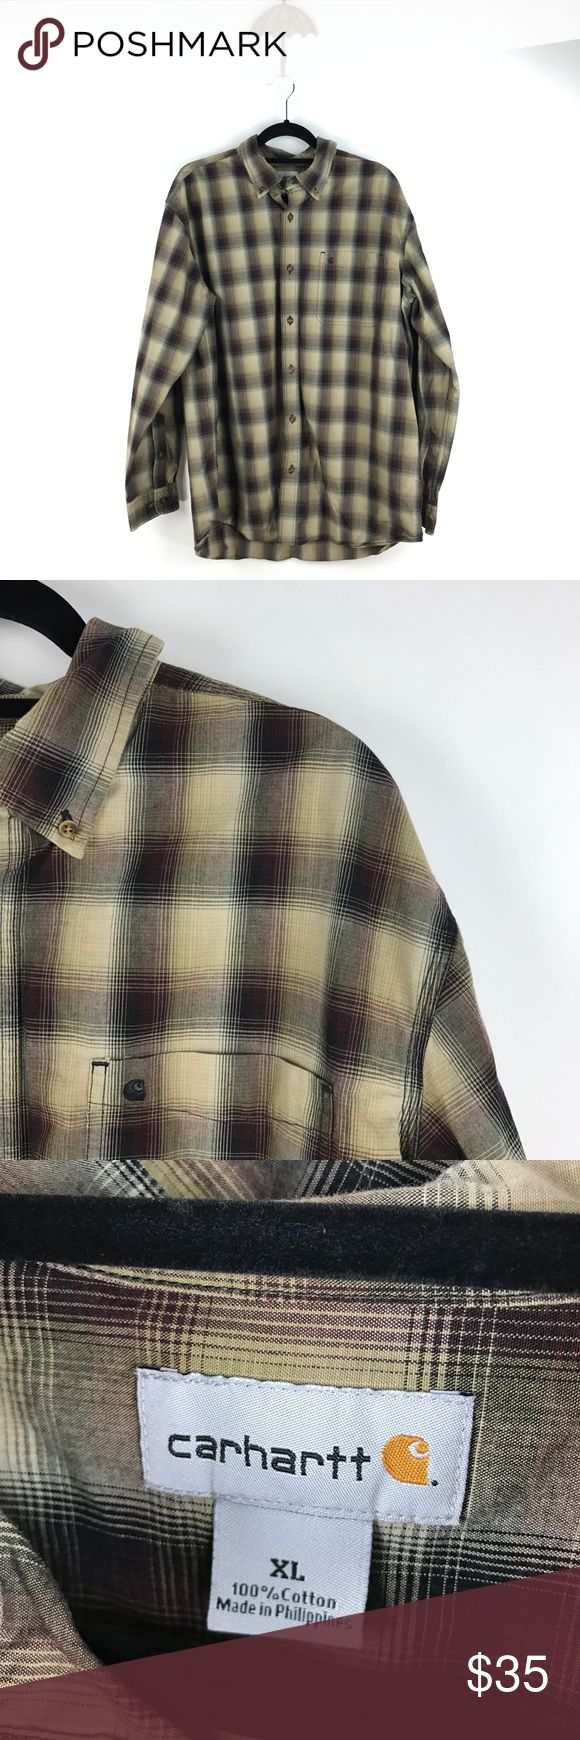 """Carhartt men's Plaid Buttondown Sz XL M84 Carhartt Button-down Plaid Shirt Men's Size XL Tan & Maroon 100% Cotton M84  Measurements: Chest:  24.5"""" Flat Across Length: 30.5"""" Flat Across  In good preowned condition with no known flaws and light overall wear. Carhartt Shirts Casual Button Down Shirts"""